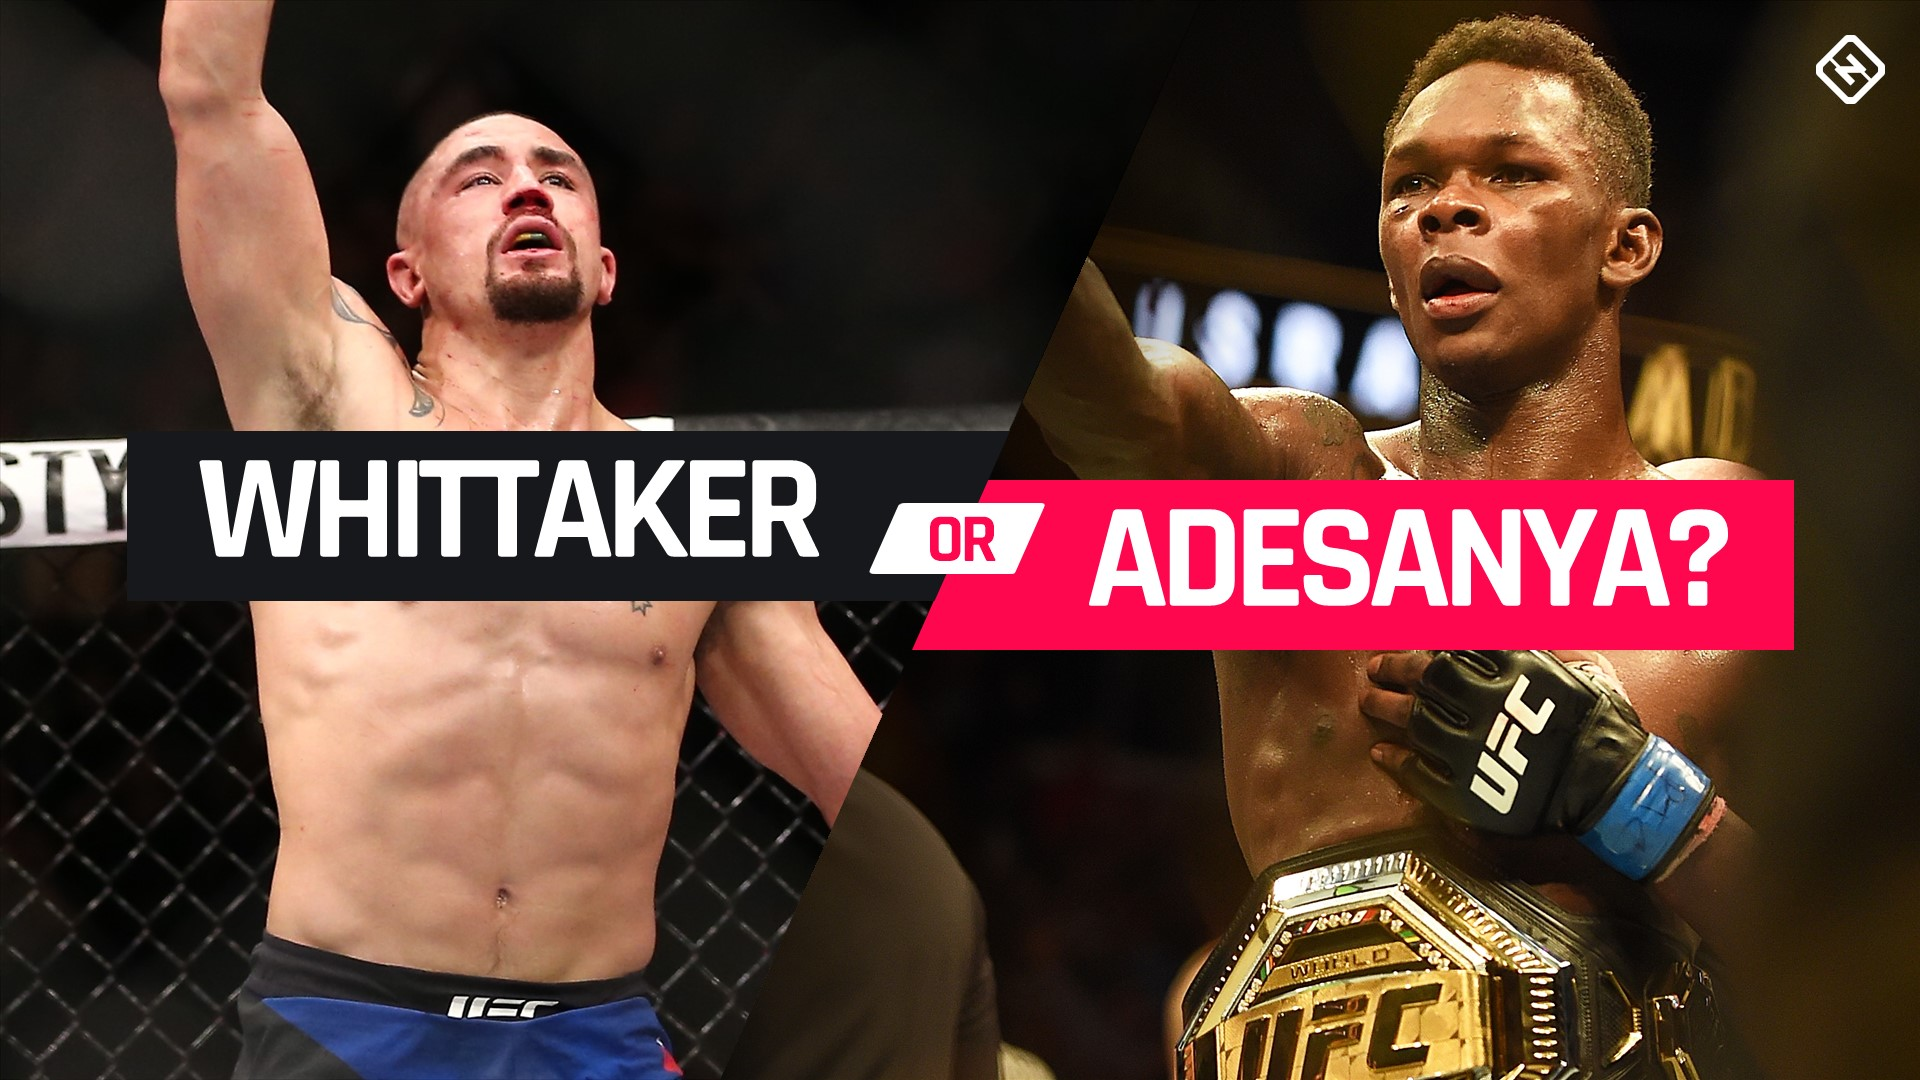 Robert Whittaker Dana White Interested In Jon Jones vs. Israel Adesanya, But First ... Whittaker: Instead of improving the sport (and themselves), everyone in UFC just sh*ts on each other Robert Whittaker Taking Israel Adesanya Fight Seriously Despite Lack of Trash Talk Robert Whittaker: I'm not a nice guy, I just don't want to be a sh-t person Robert Whittaker won't get into trash talk with Israel Adesanya: 'I'm not a part of that little game' Robert Whittaker Blasts UFC Roster: 'They Want To S–t On Each Other!' Former UFC welterweight title challenger Darren Till teases move to middleweight Former UFC welterweight title challenger Darren Till hints at middleweight move Darren Till Hints At Move Up To Middleweight Midnight Mania! Anderson Silva says his son sometimes beats him in sparring Robert Whittaker Feels 'On Top Of The World' Ahead Of UFC 243 Can anyone bump Jones, Nunes from pound-for-pound No. 1 spots? Unfiltered Episode 306: Israel Adesanya, Michael Chiesa and UFC 239 Recap Yorgan De Castro vs. Justin Tafa set for UFC 243 Israel Adesanya says Jon Jones was great when 'there wasn't USADA around,' Jones responds Israel Adesanya slams 'meth head' Robert Whittaker for UFC 243 staredown Several new faces pop up, make moves in the divisional rankings Video: Israel Adesanya on Robert Whittaker: 'He needs Jon Jones or God to help him beat me' After winning lightweight title, Tony Ferguson will 'knockout everybody' at welterweight Israel Adesanya says Robert Whittaker reminded him of a 'meth head' at UFC summer press conference face-off Michael Bisping Believes Robert Whittaker Will Make Israel Adesanya 'Eat His Words' Trash talk? Memes? Robert Whittaker doesn't understand why Israel Adesanya is so upset UFC Half-Year Awards: Best Fight Of 2019 So Far Israel Adesanya: Robert Whittaker title fight 'definitely' in Australia Sherdog's Pound-for-Pound Top 10 Rankings Israel Adesanya predicts record UFC crowd for middleweight title fight with Robert Whittaker Episode 53: Masvidal, Askren, Adesanya, Covington, Ngannou, Chiesa, Brown, more 'It means nothing': Why UFC title left Robert Whittaker unfulfilled Israel Adesanya Confirms UFC 243 Fight With Robert Whittaker Will 'Definitely' Be In Australia UFC 239: Jon Jones v Thiago Santos – Live updates | NewshubStories curated for you